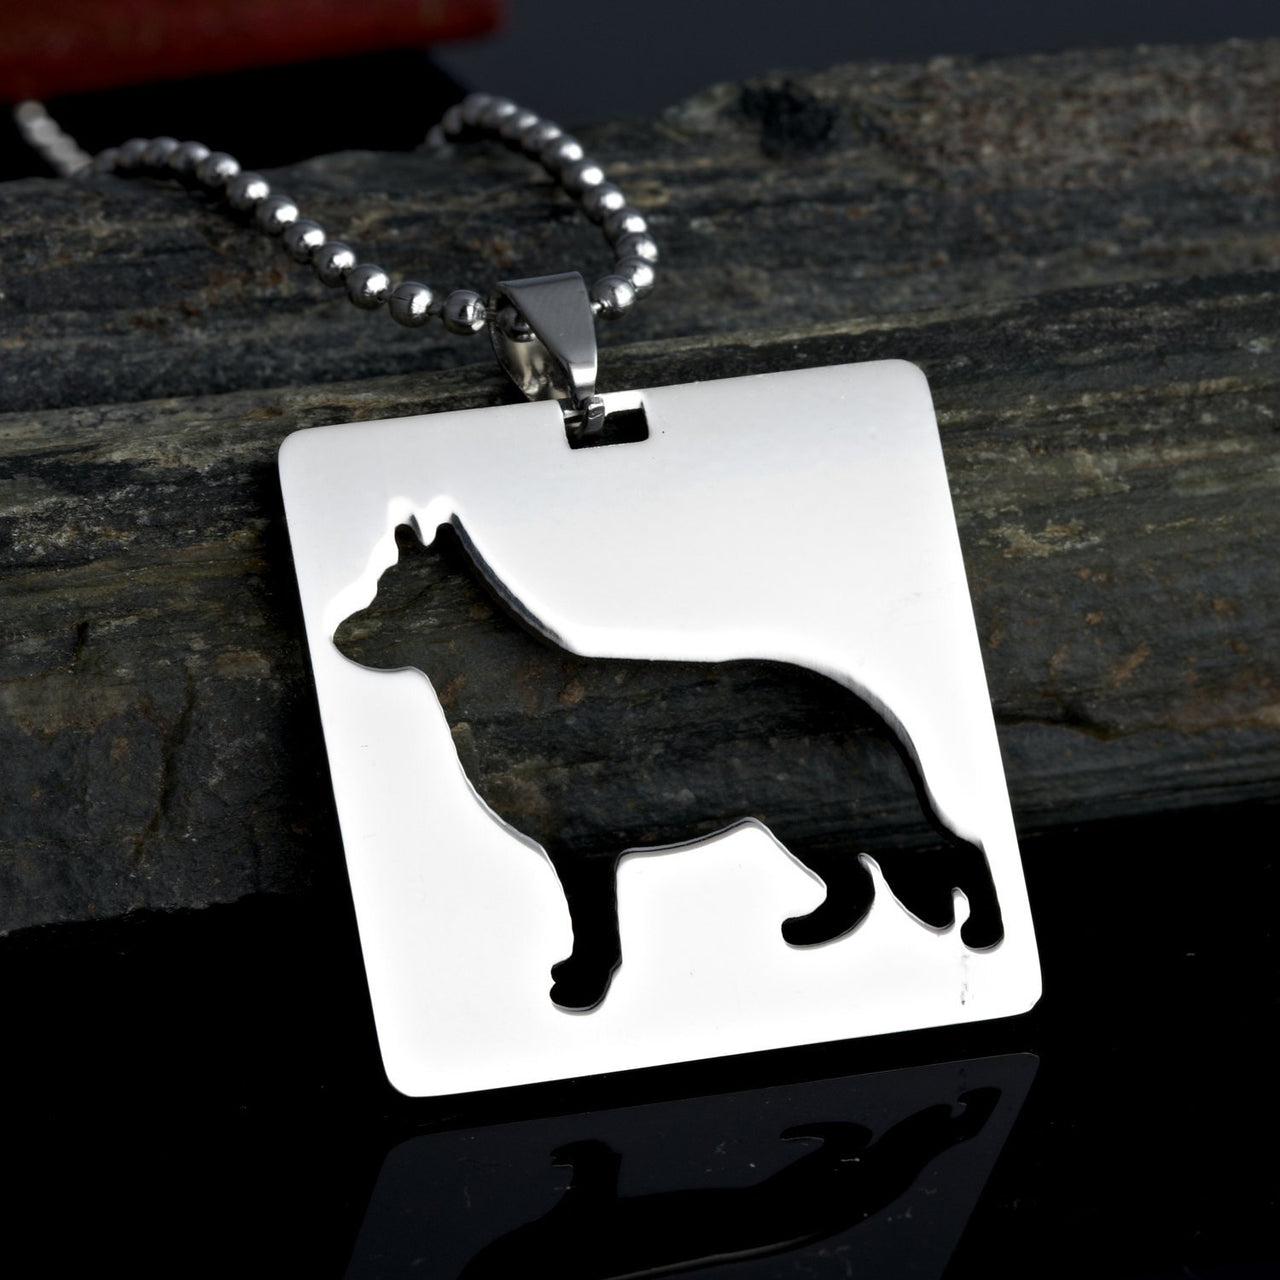 2x Stainless Steel Round Shaped German Shepherd GSD Dog Silhouette Pet Dog Tag Breed Collar Charm Pendant Necklace